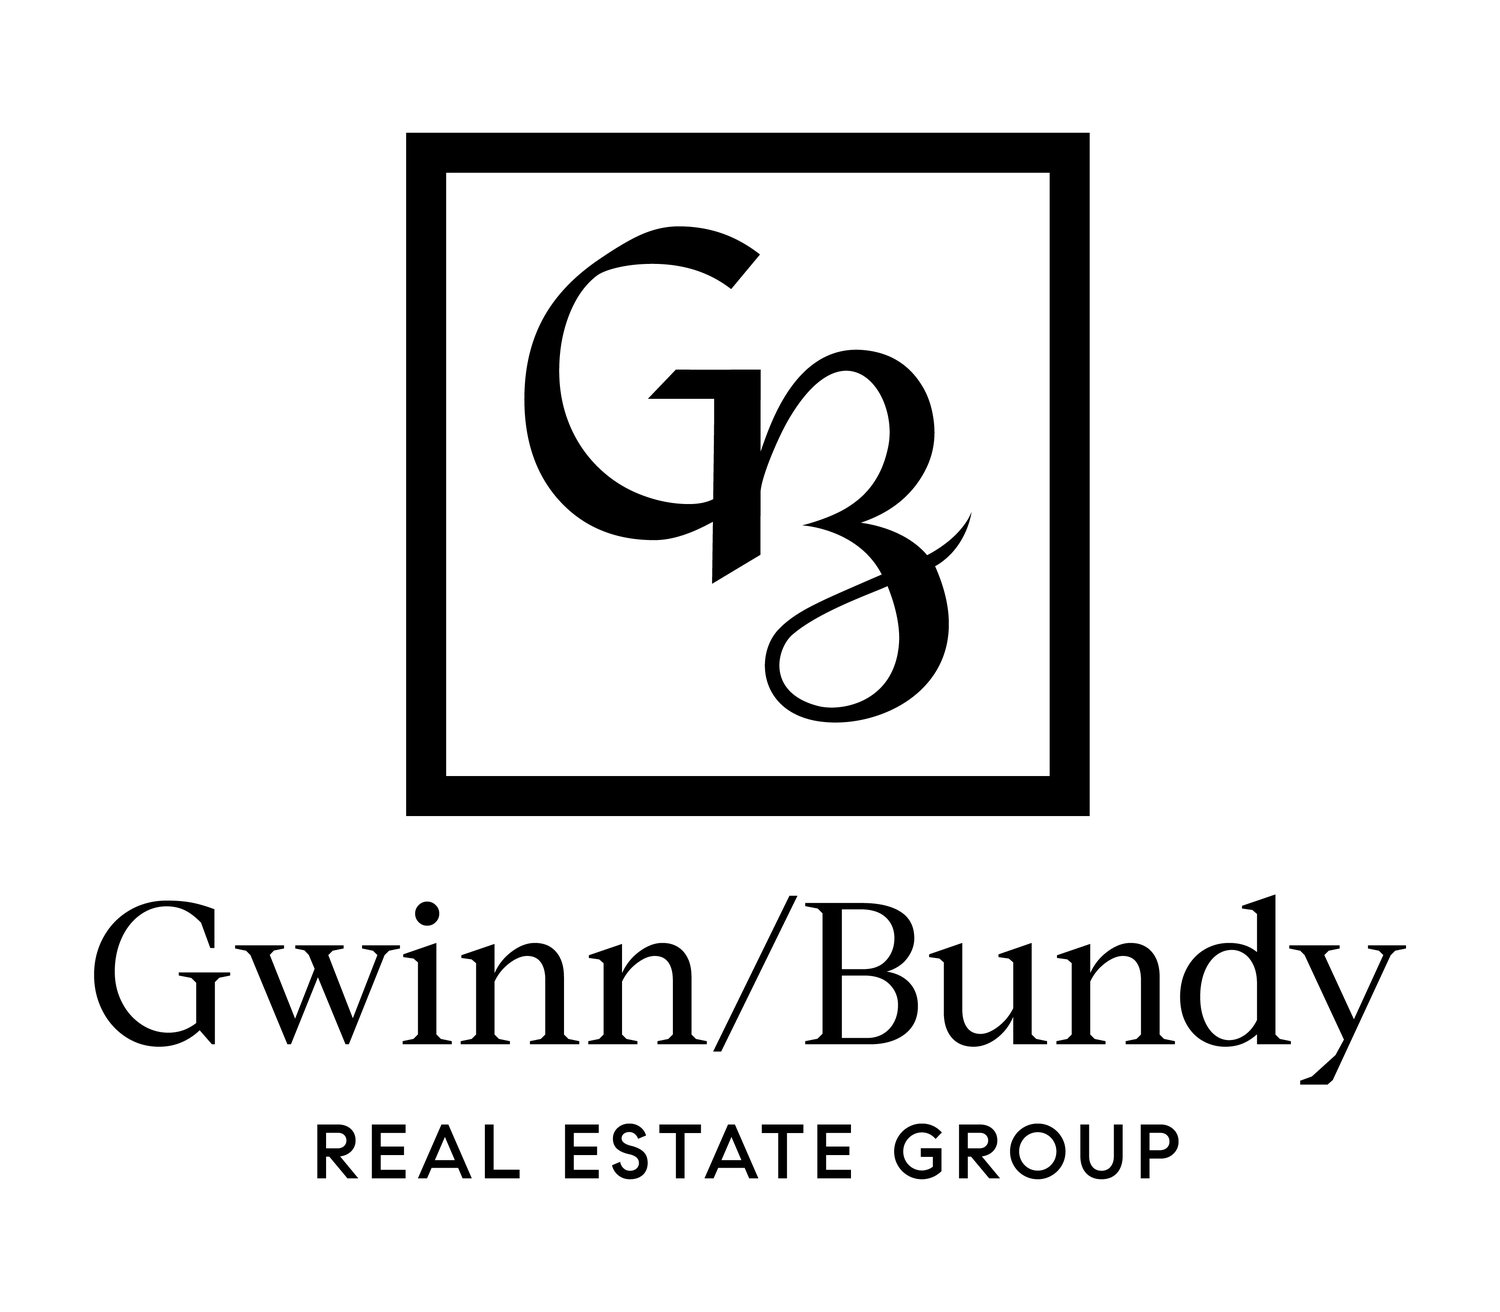 Gwinn Bundy Real Estate